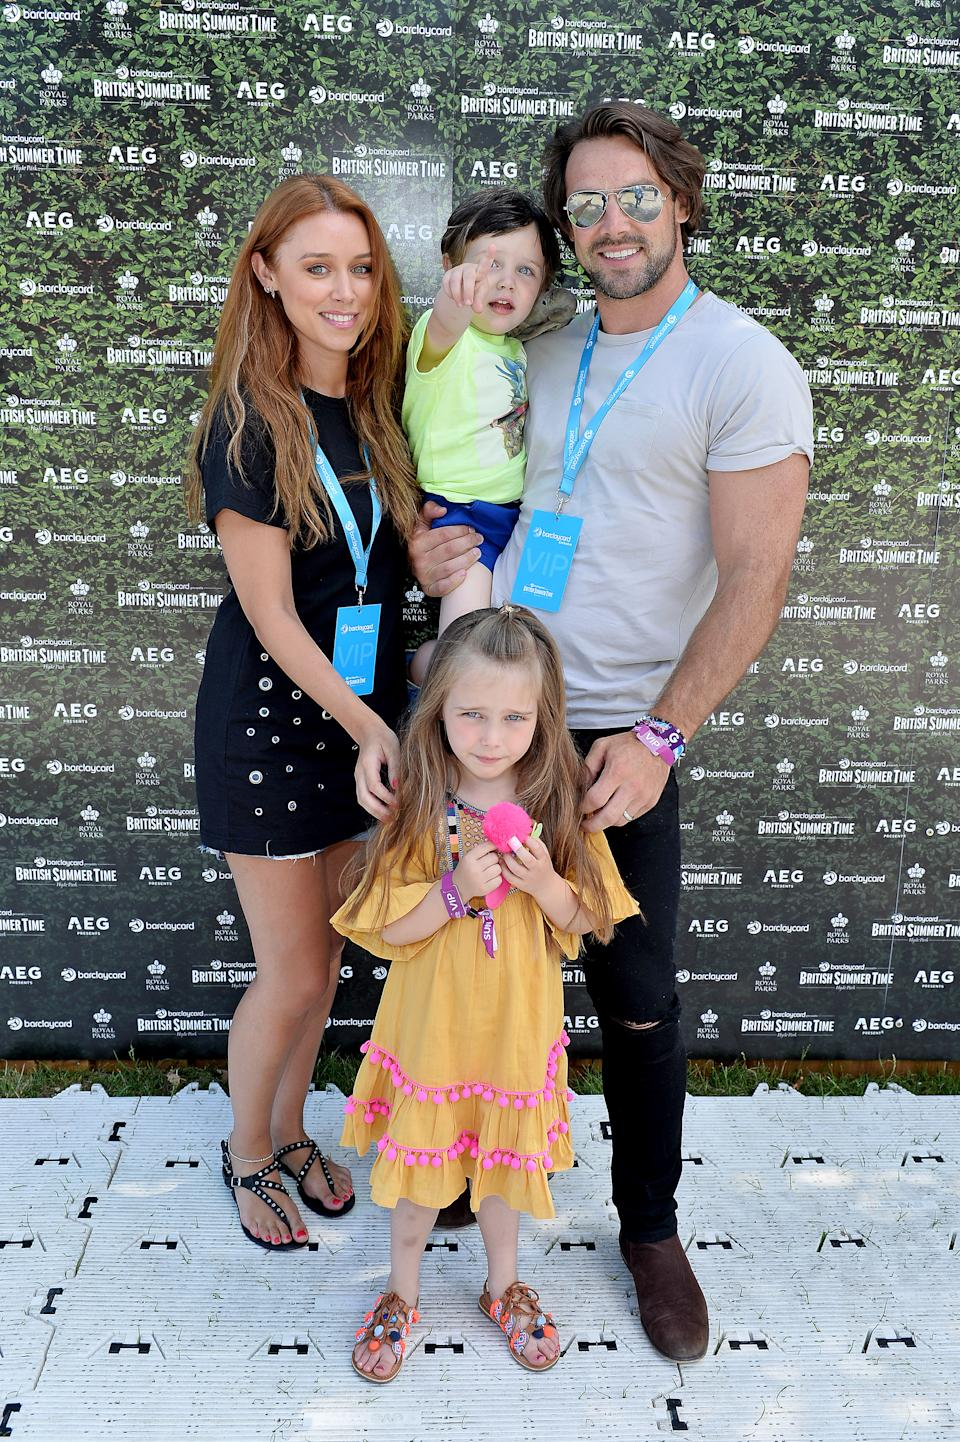 Una Healy and Ben Foden's children split their time between Ireland and the US. (Photo by Jeff Spicer/Getty Images)